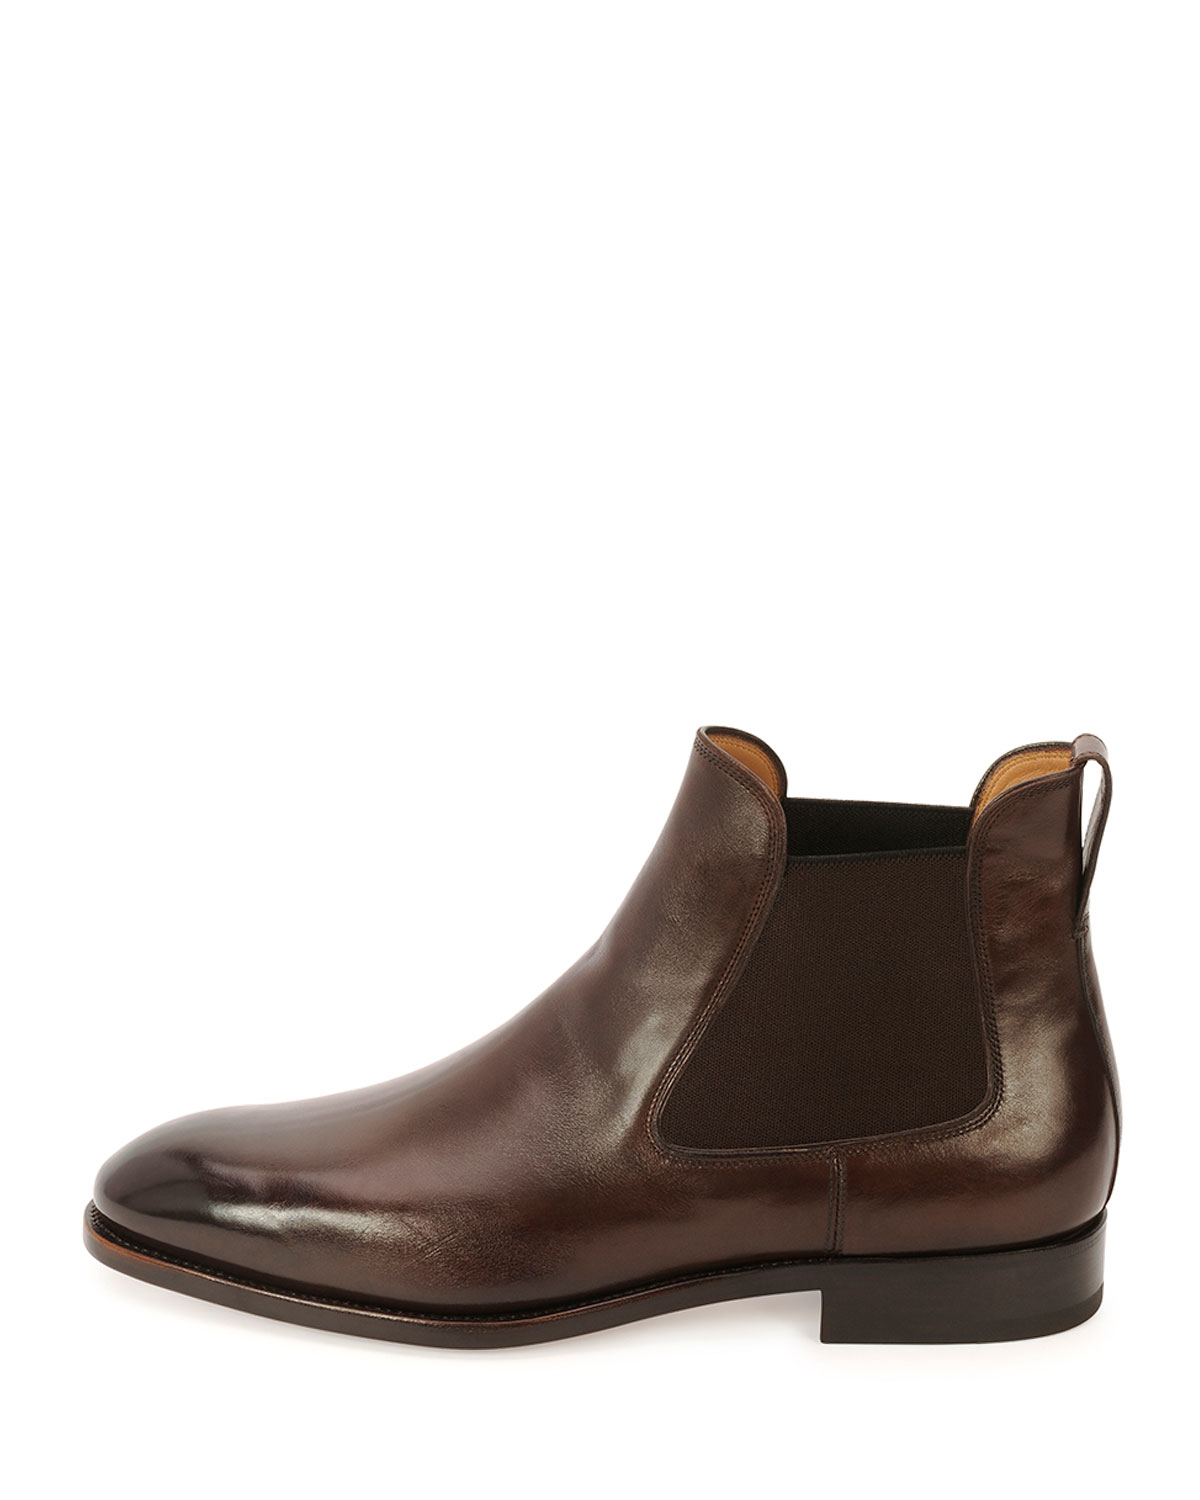 ferragamo marrico tramezza burnished calfskin chelsea boot